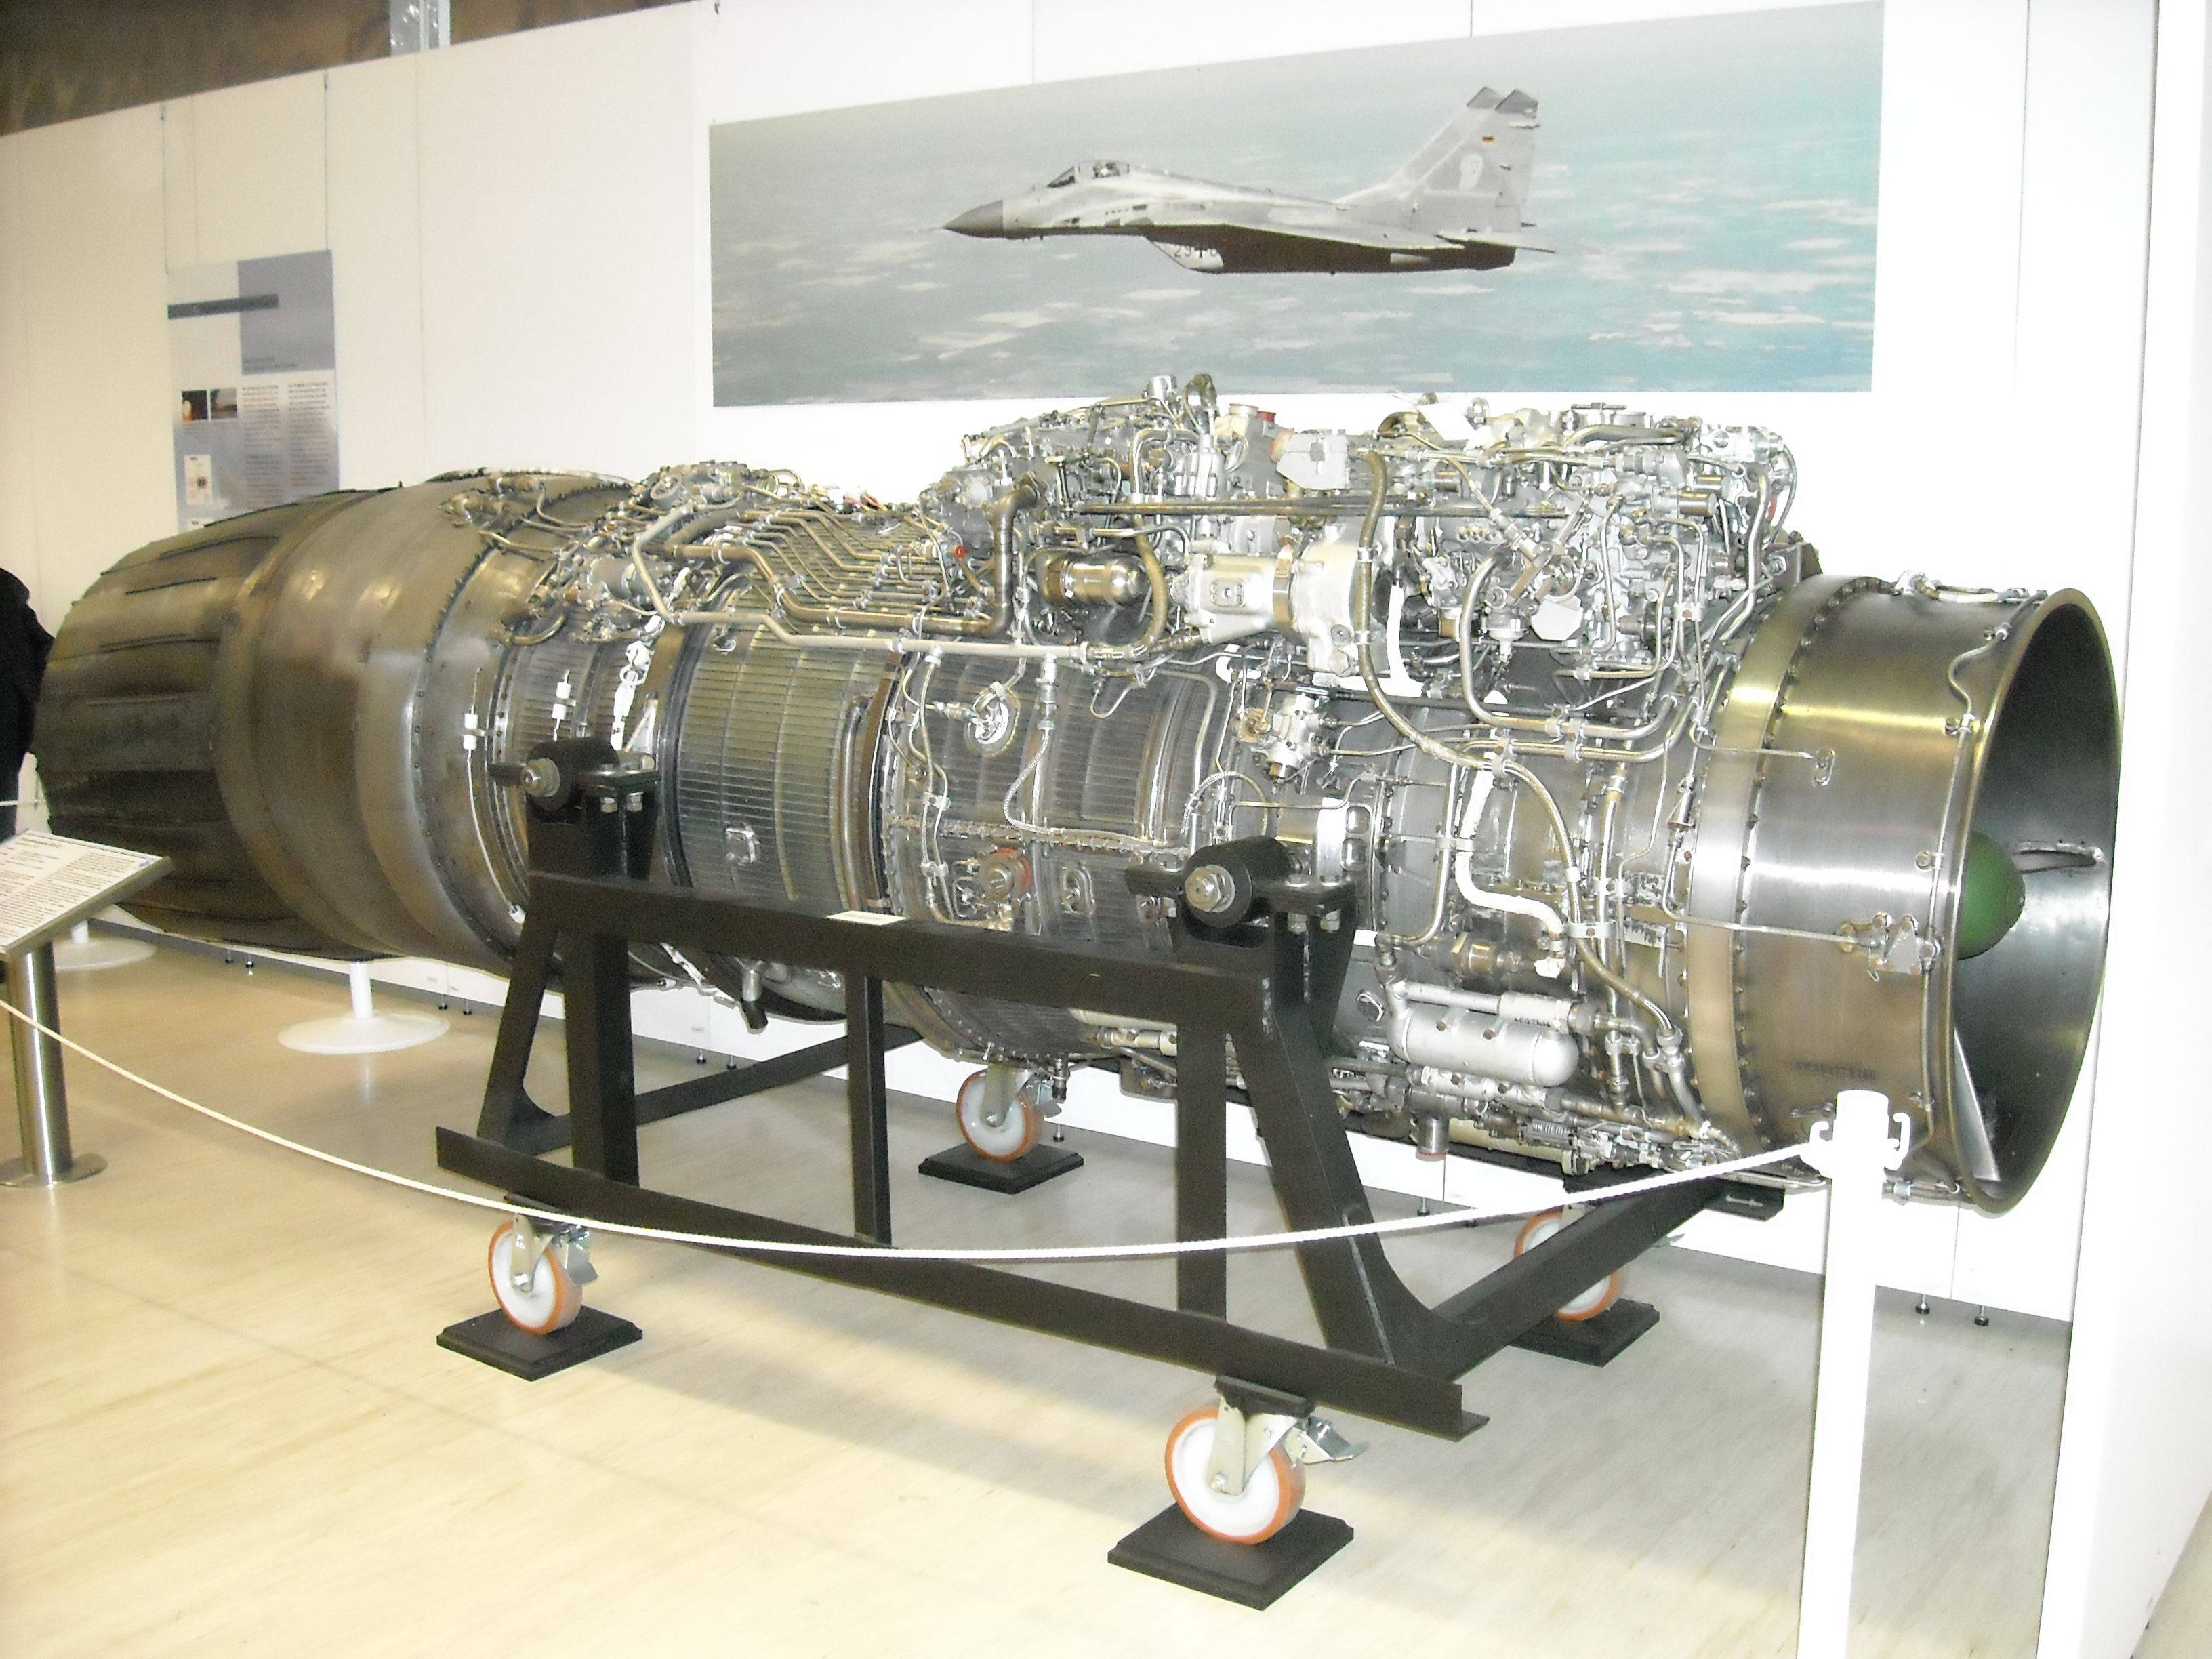 RD-33 engine from russia currently used in JF-17